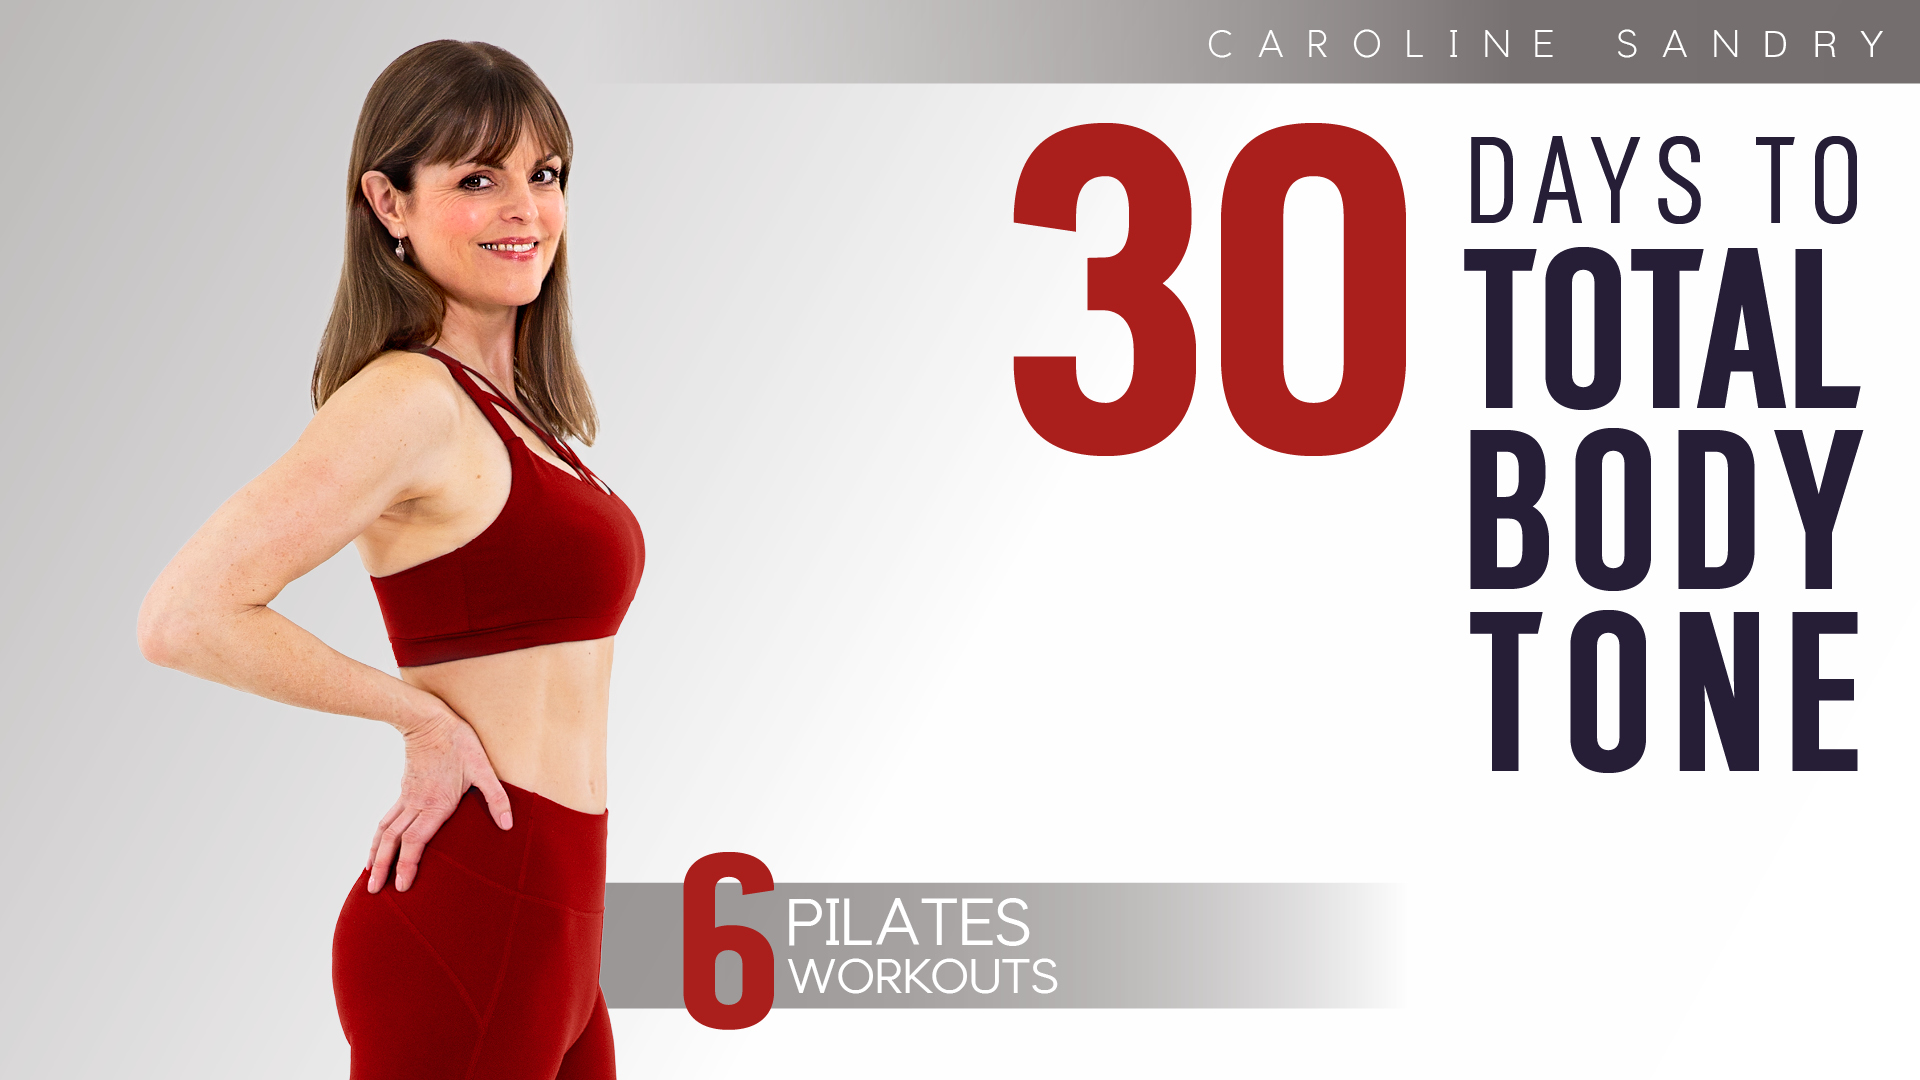 30 Days To Total Body Tone